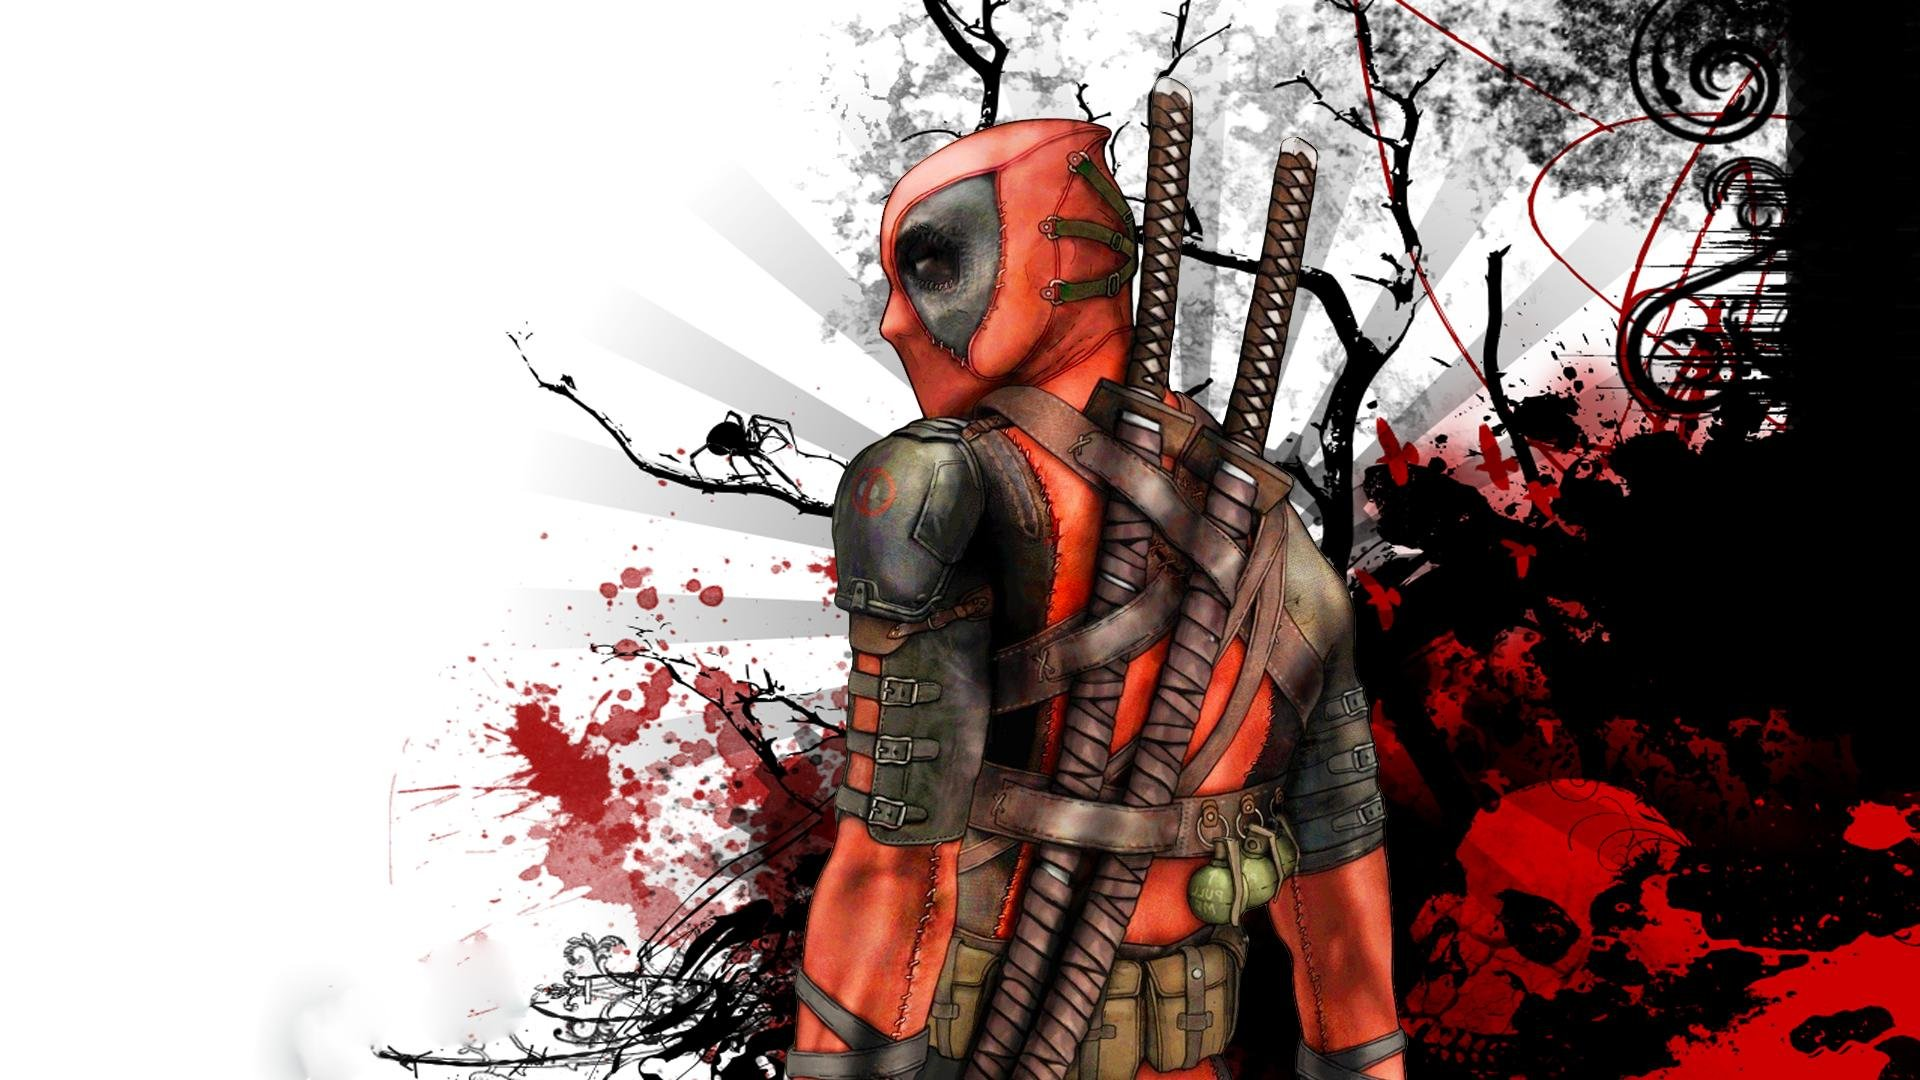 Deadpool wallpaper 1920x1080 281012 WallpaperUP 1920x1080